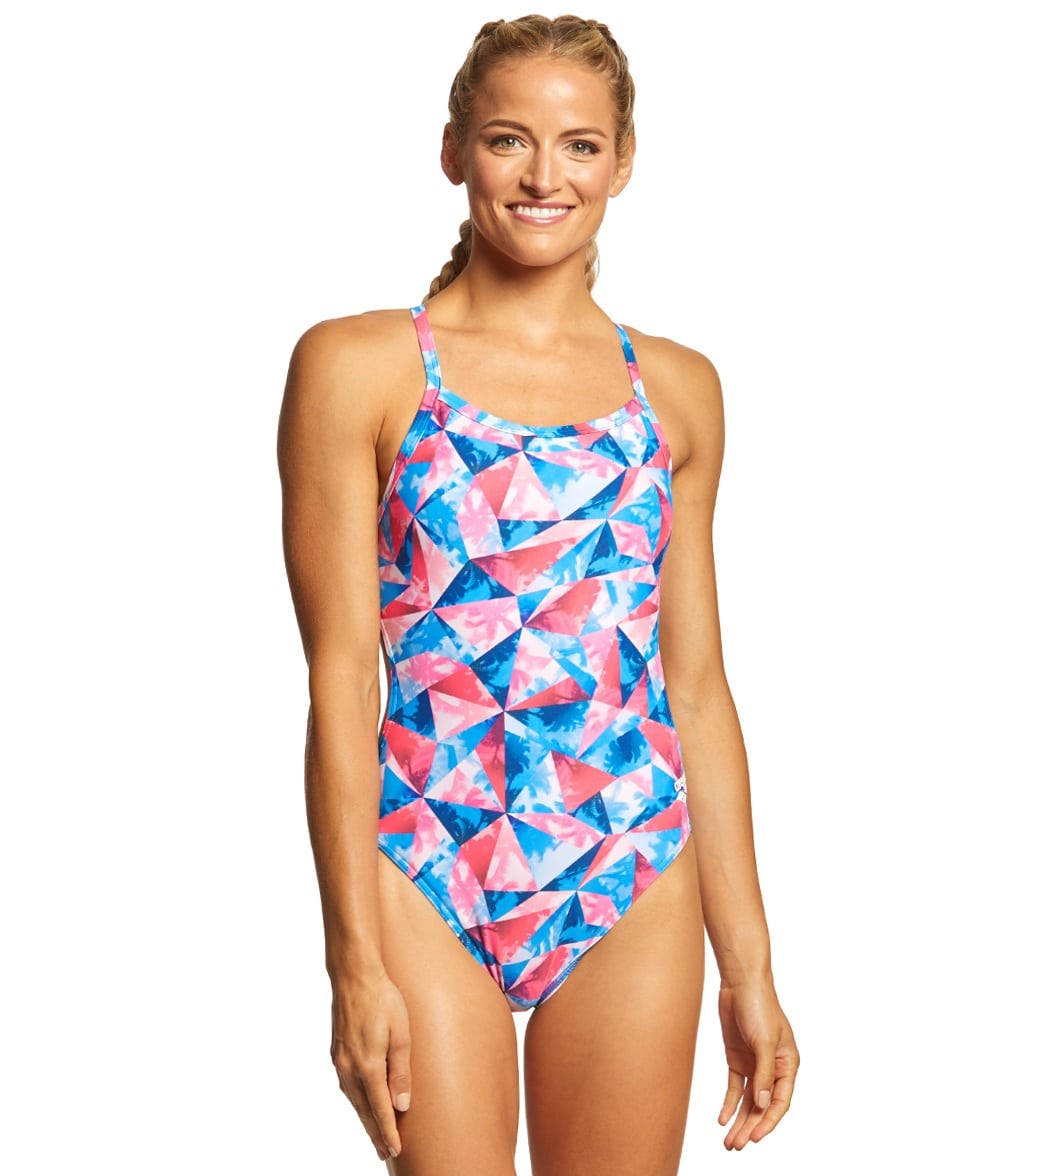 ec36224e47 Arena Women s Tropical Challenge MaxLife Thin Strap Open Back One Piece  Swimsuit at SwimOutlet.com - Free Shipping